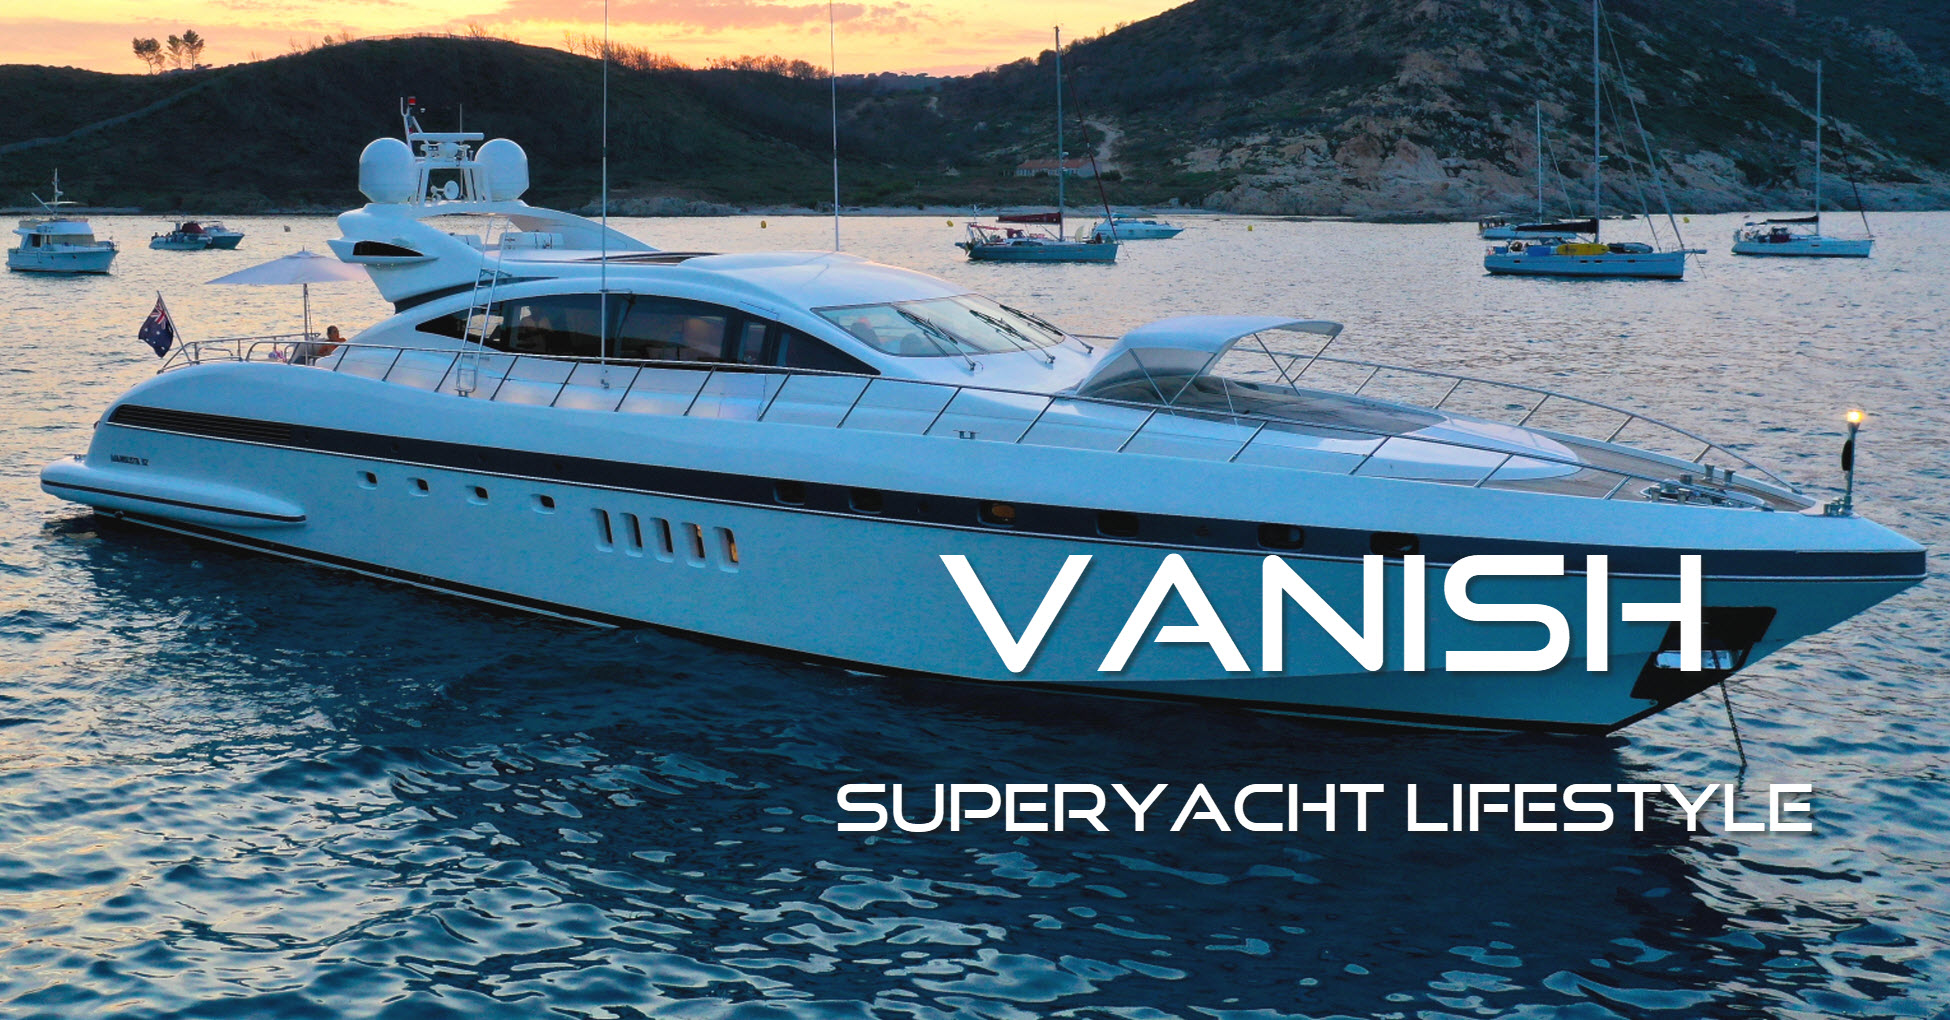 About - Vanish Super Yacht - Buy, Charter, Events 1300 148 648